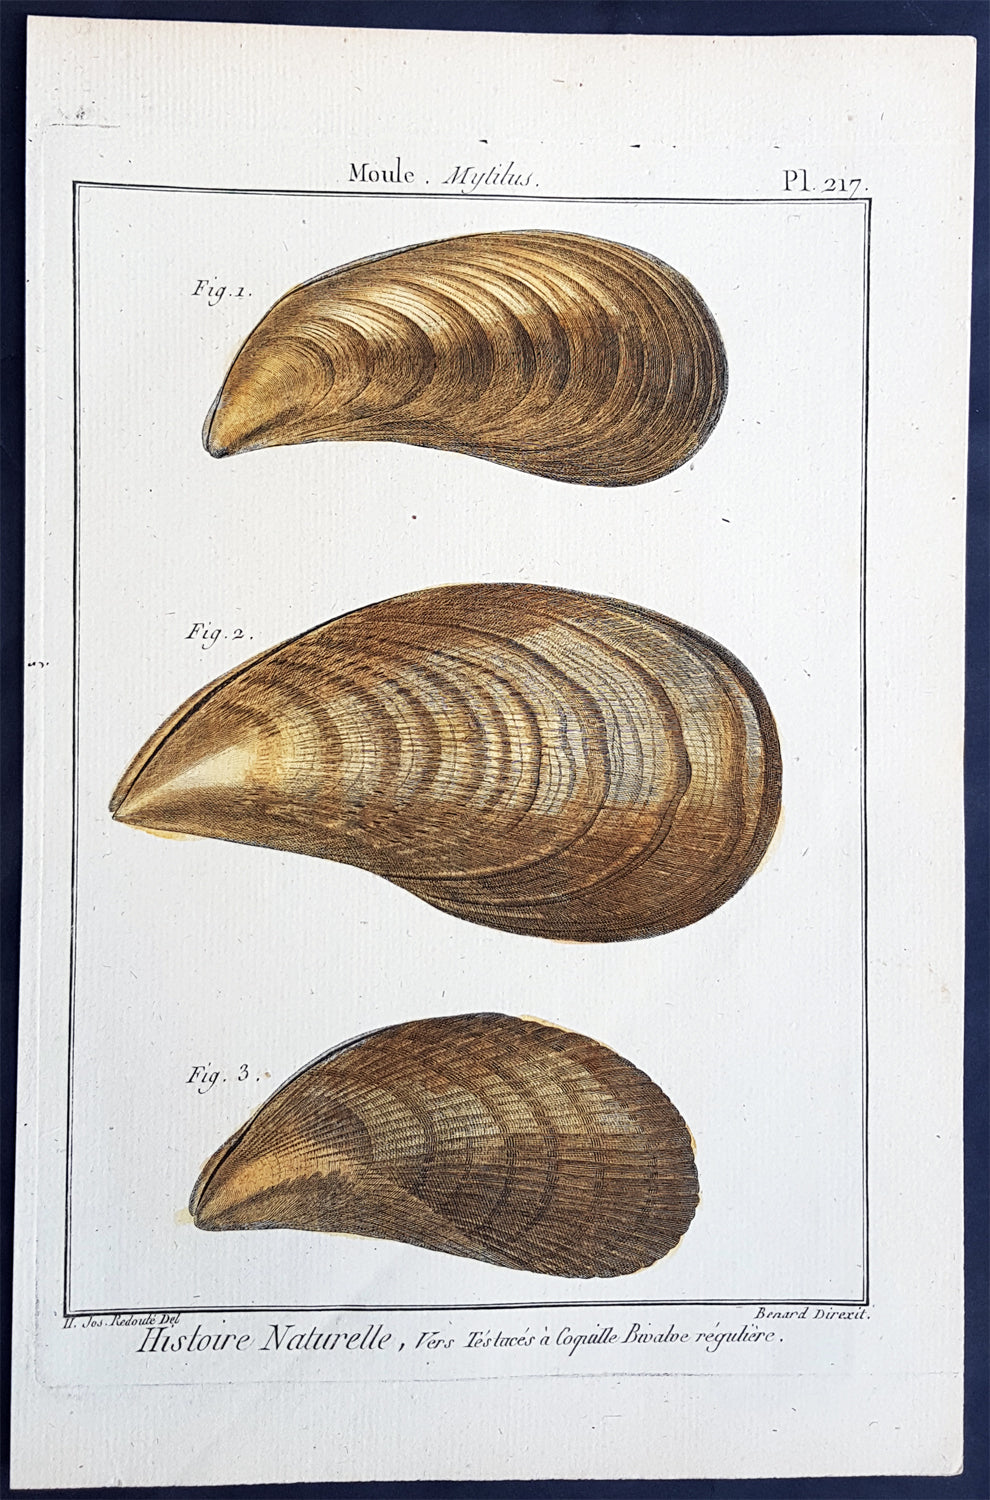 Original Antique Hand Colored Sea Shell engraving from 1829